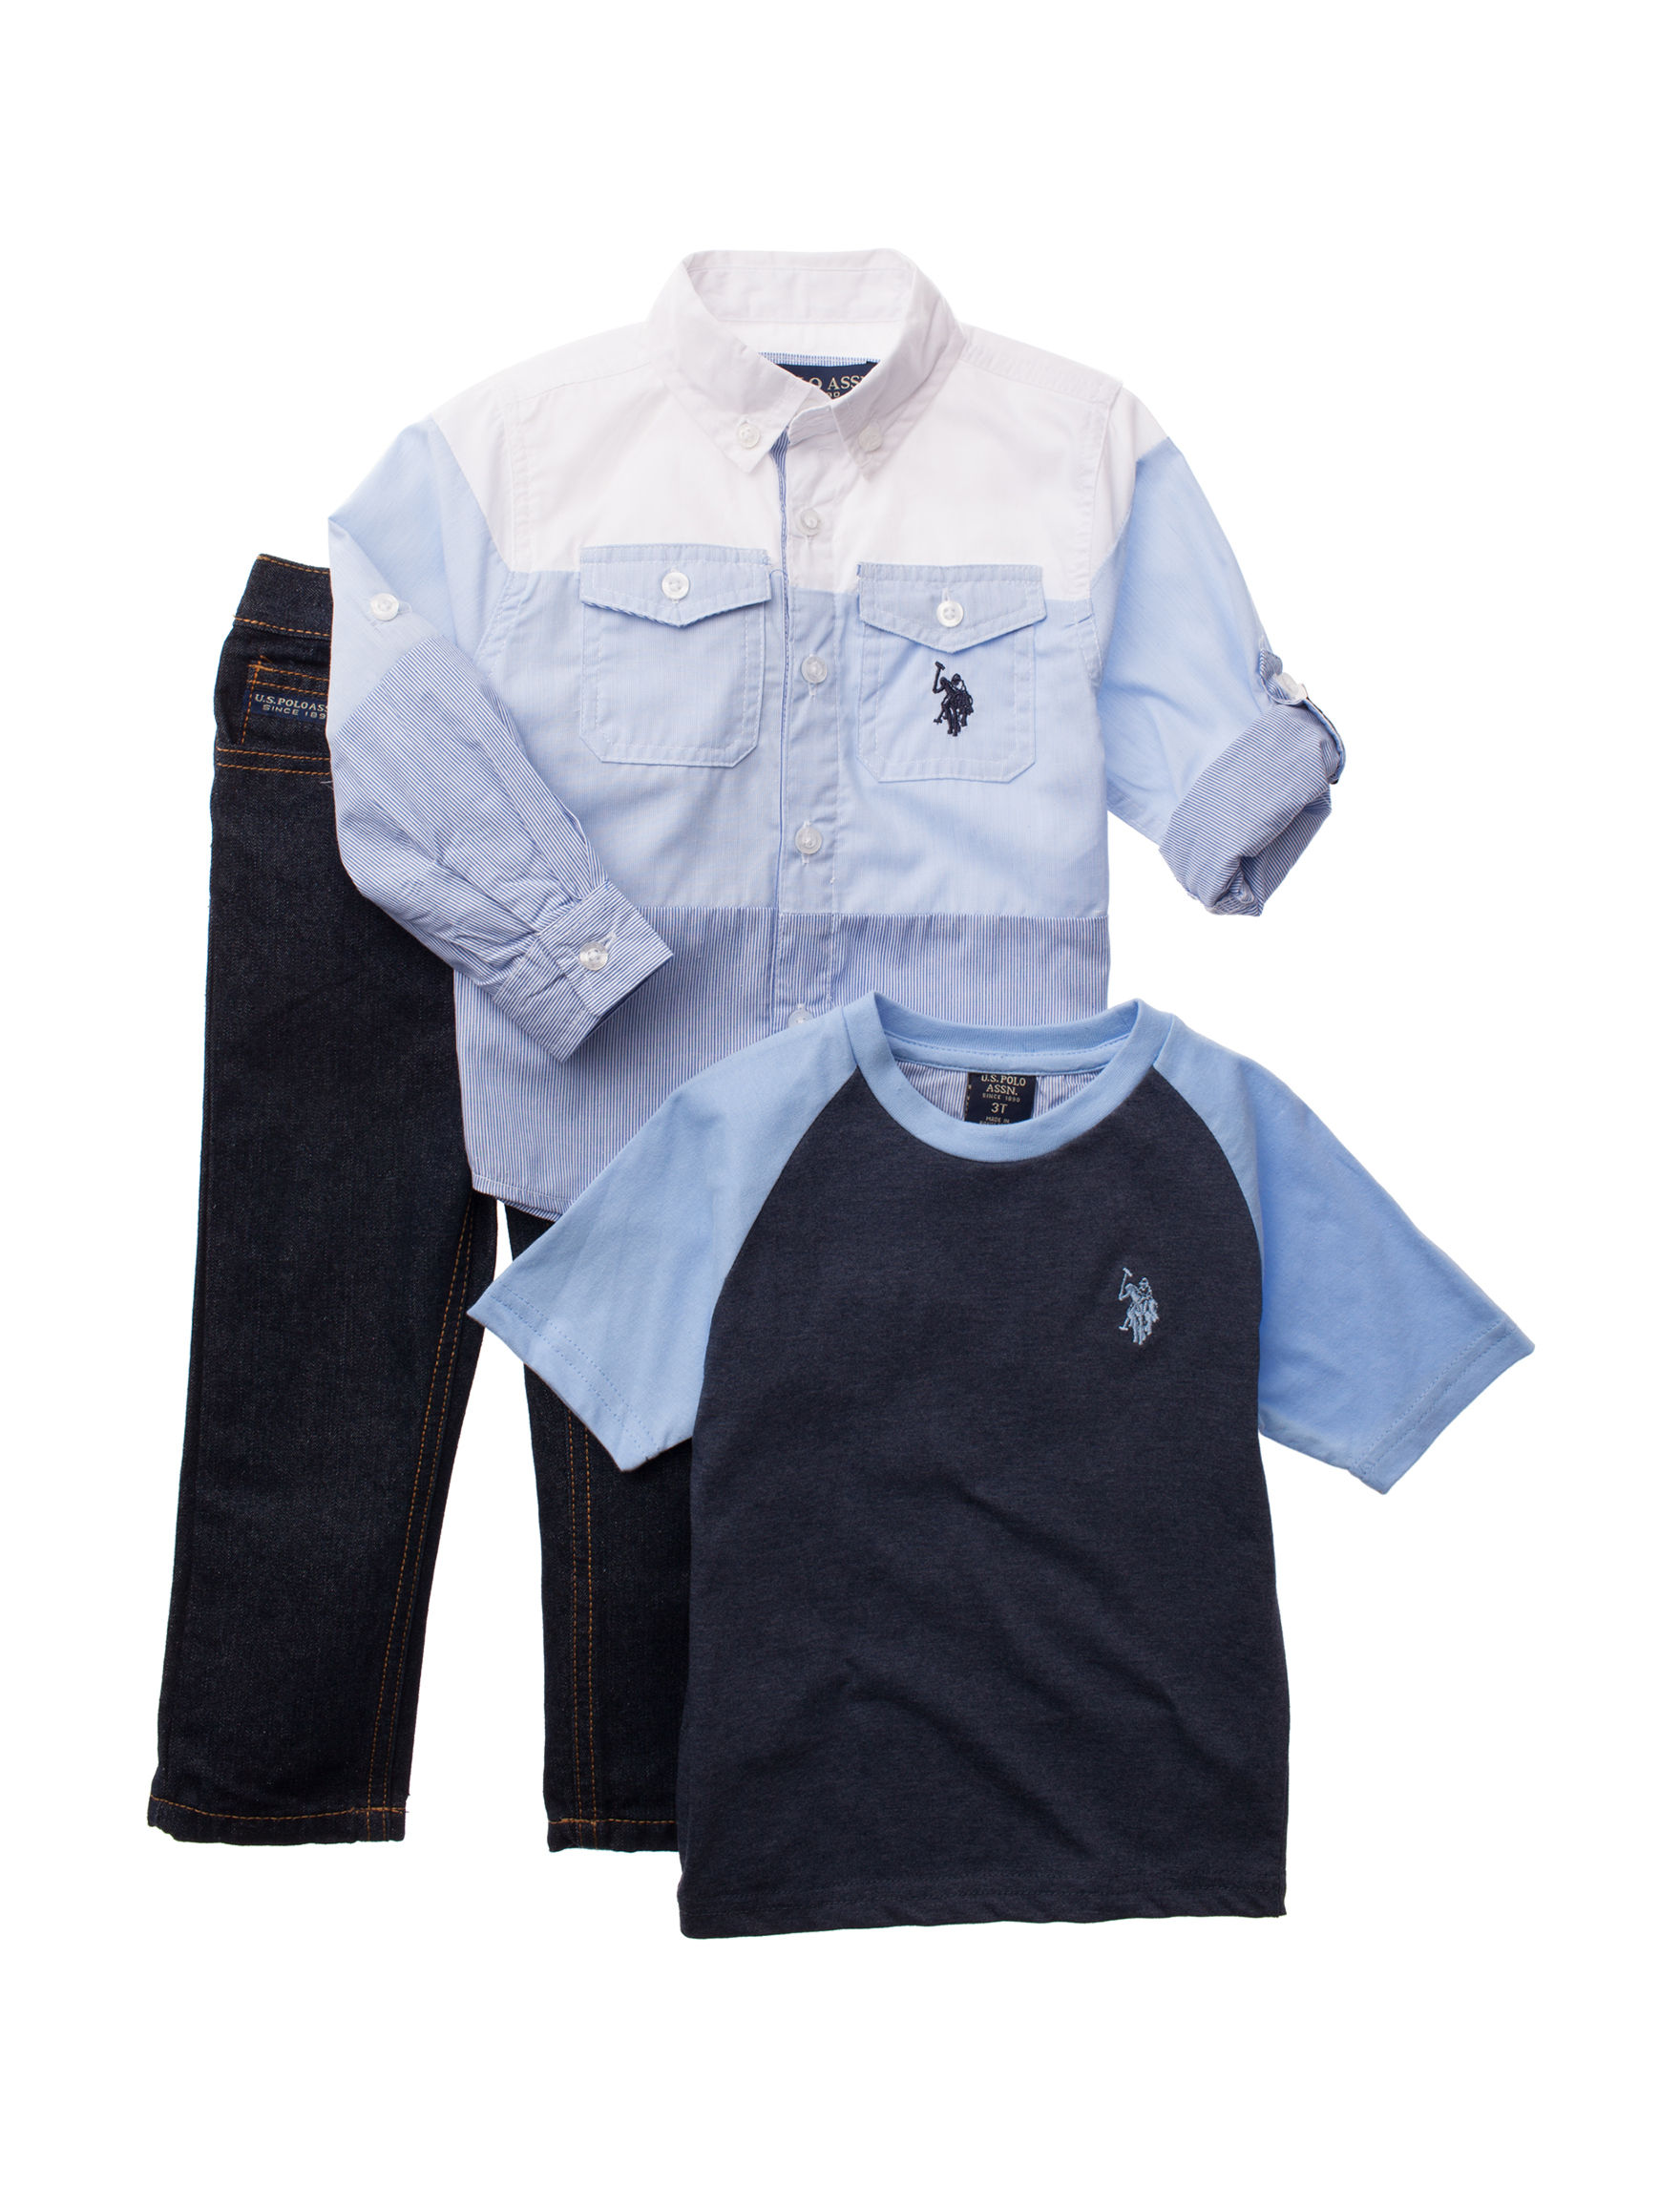 U.S. Polo Assn. Blue Stripe